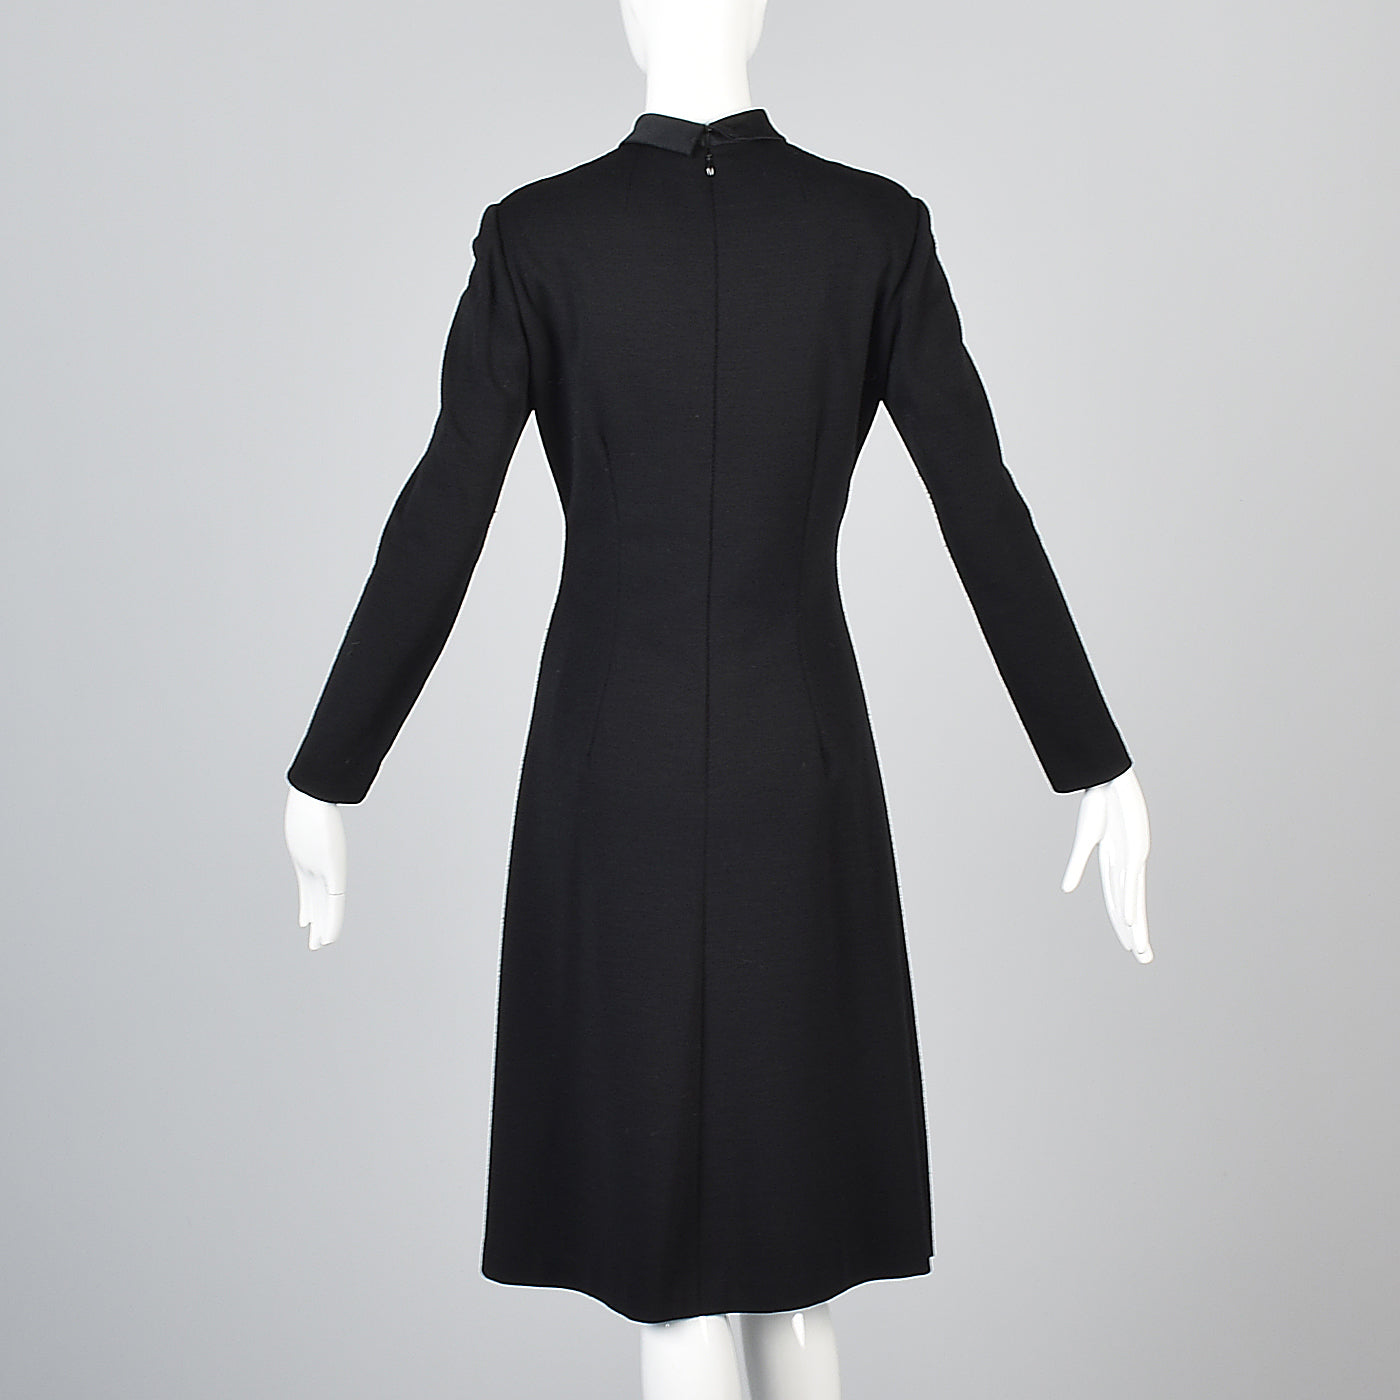 Adele Simpson Little Black Dress with Keyhole Bust & Satin Bow